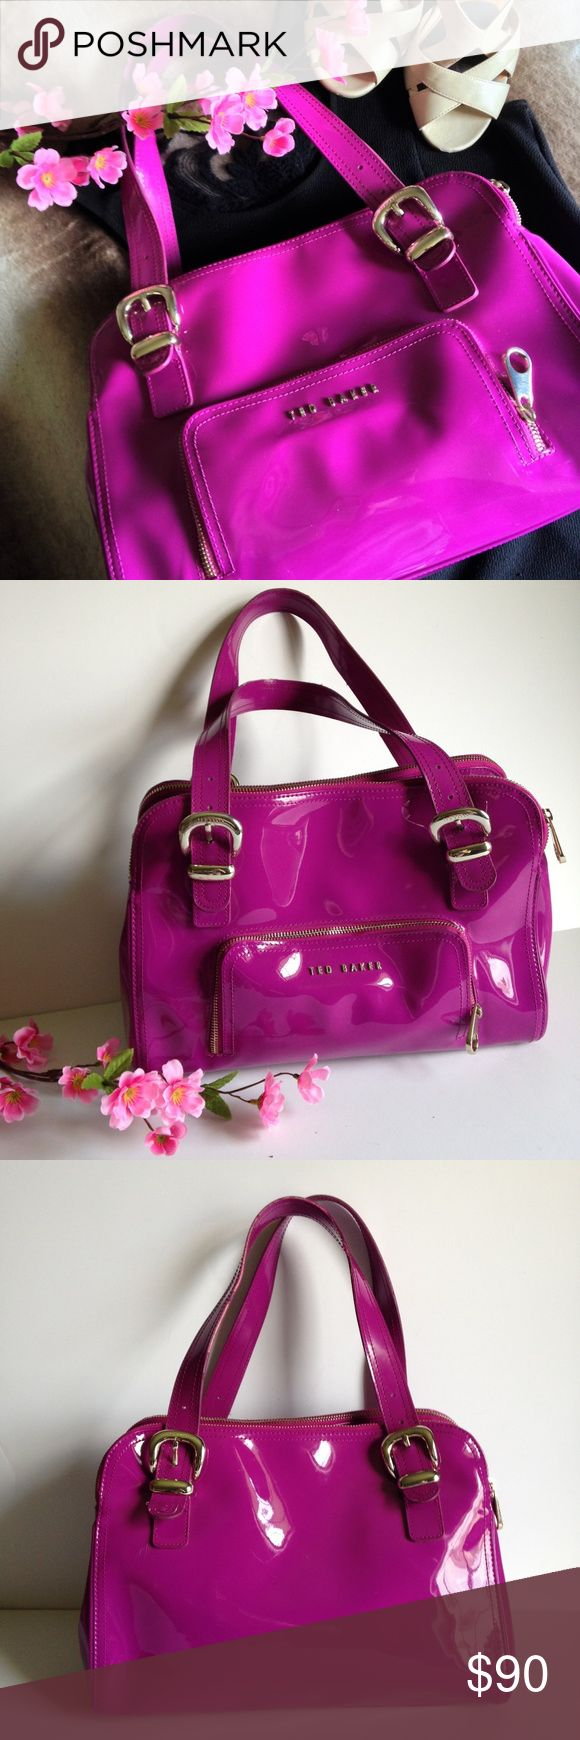 """Ted Baker Fuchsia Vegan Patent Leather Bag Super cute Ted Baker shoulder/hand bag, in fuchsia 100% vegan patent leather. Features front zip pocket, slightly adjustable double straps with buckle detail, top magnetic snap closure, 2 top zip compartments and beautiful black and white floral lining. In good used condition, has some minor wear as pictured. Approximately 14"""" wide, 10"""" tall, 5"""" deep and 8"""" strap drop at the longest. I happily entertain reasonable offers 😊🌸 Ted Baker Bags Shoulder…"""